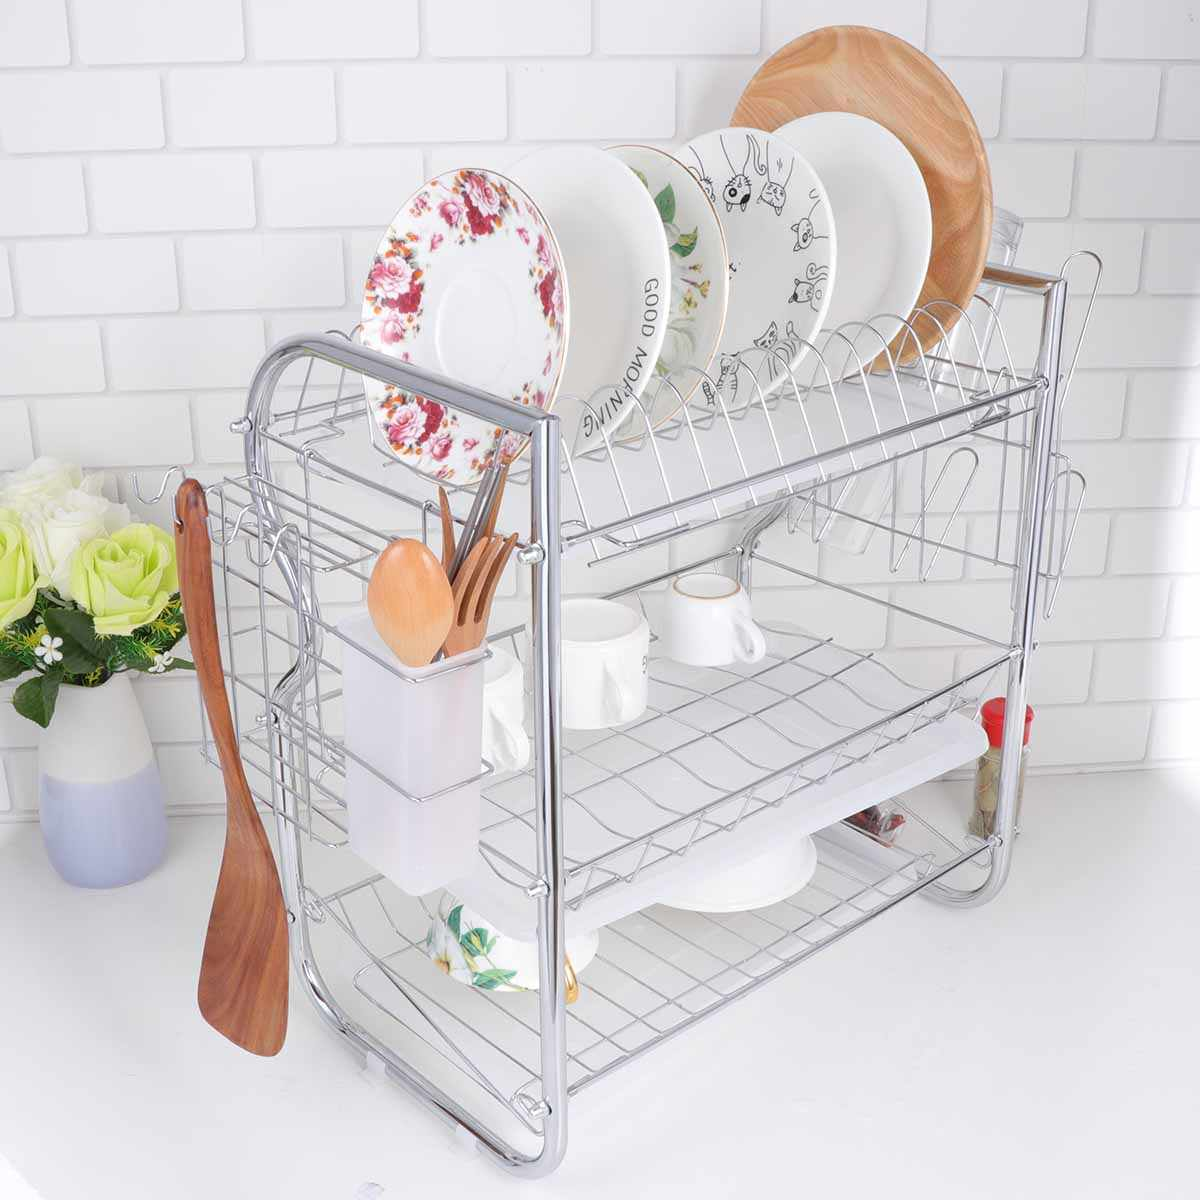 Dish Drainer Iron Art Kitchen Cutlery